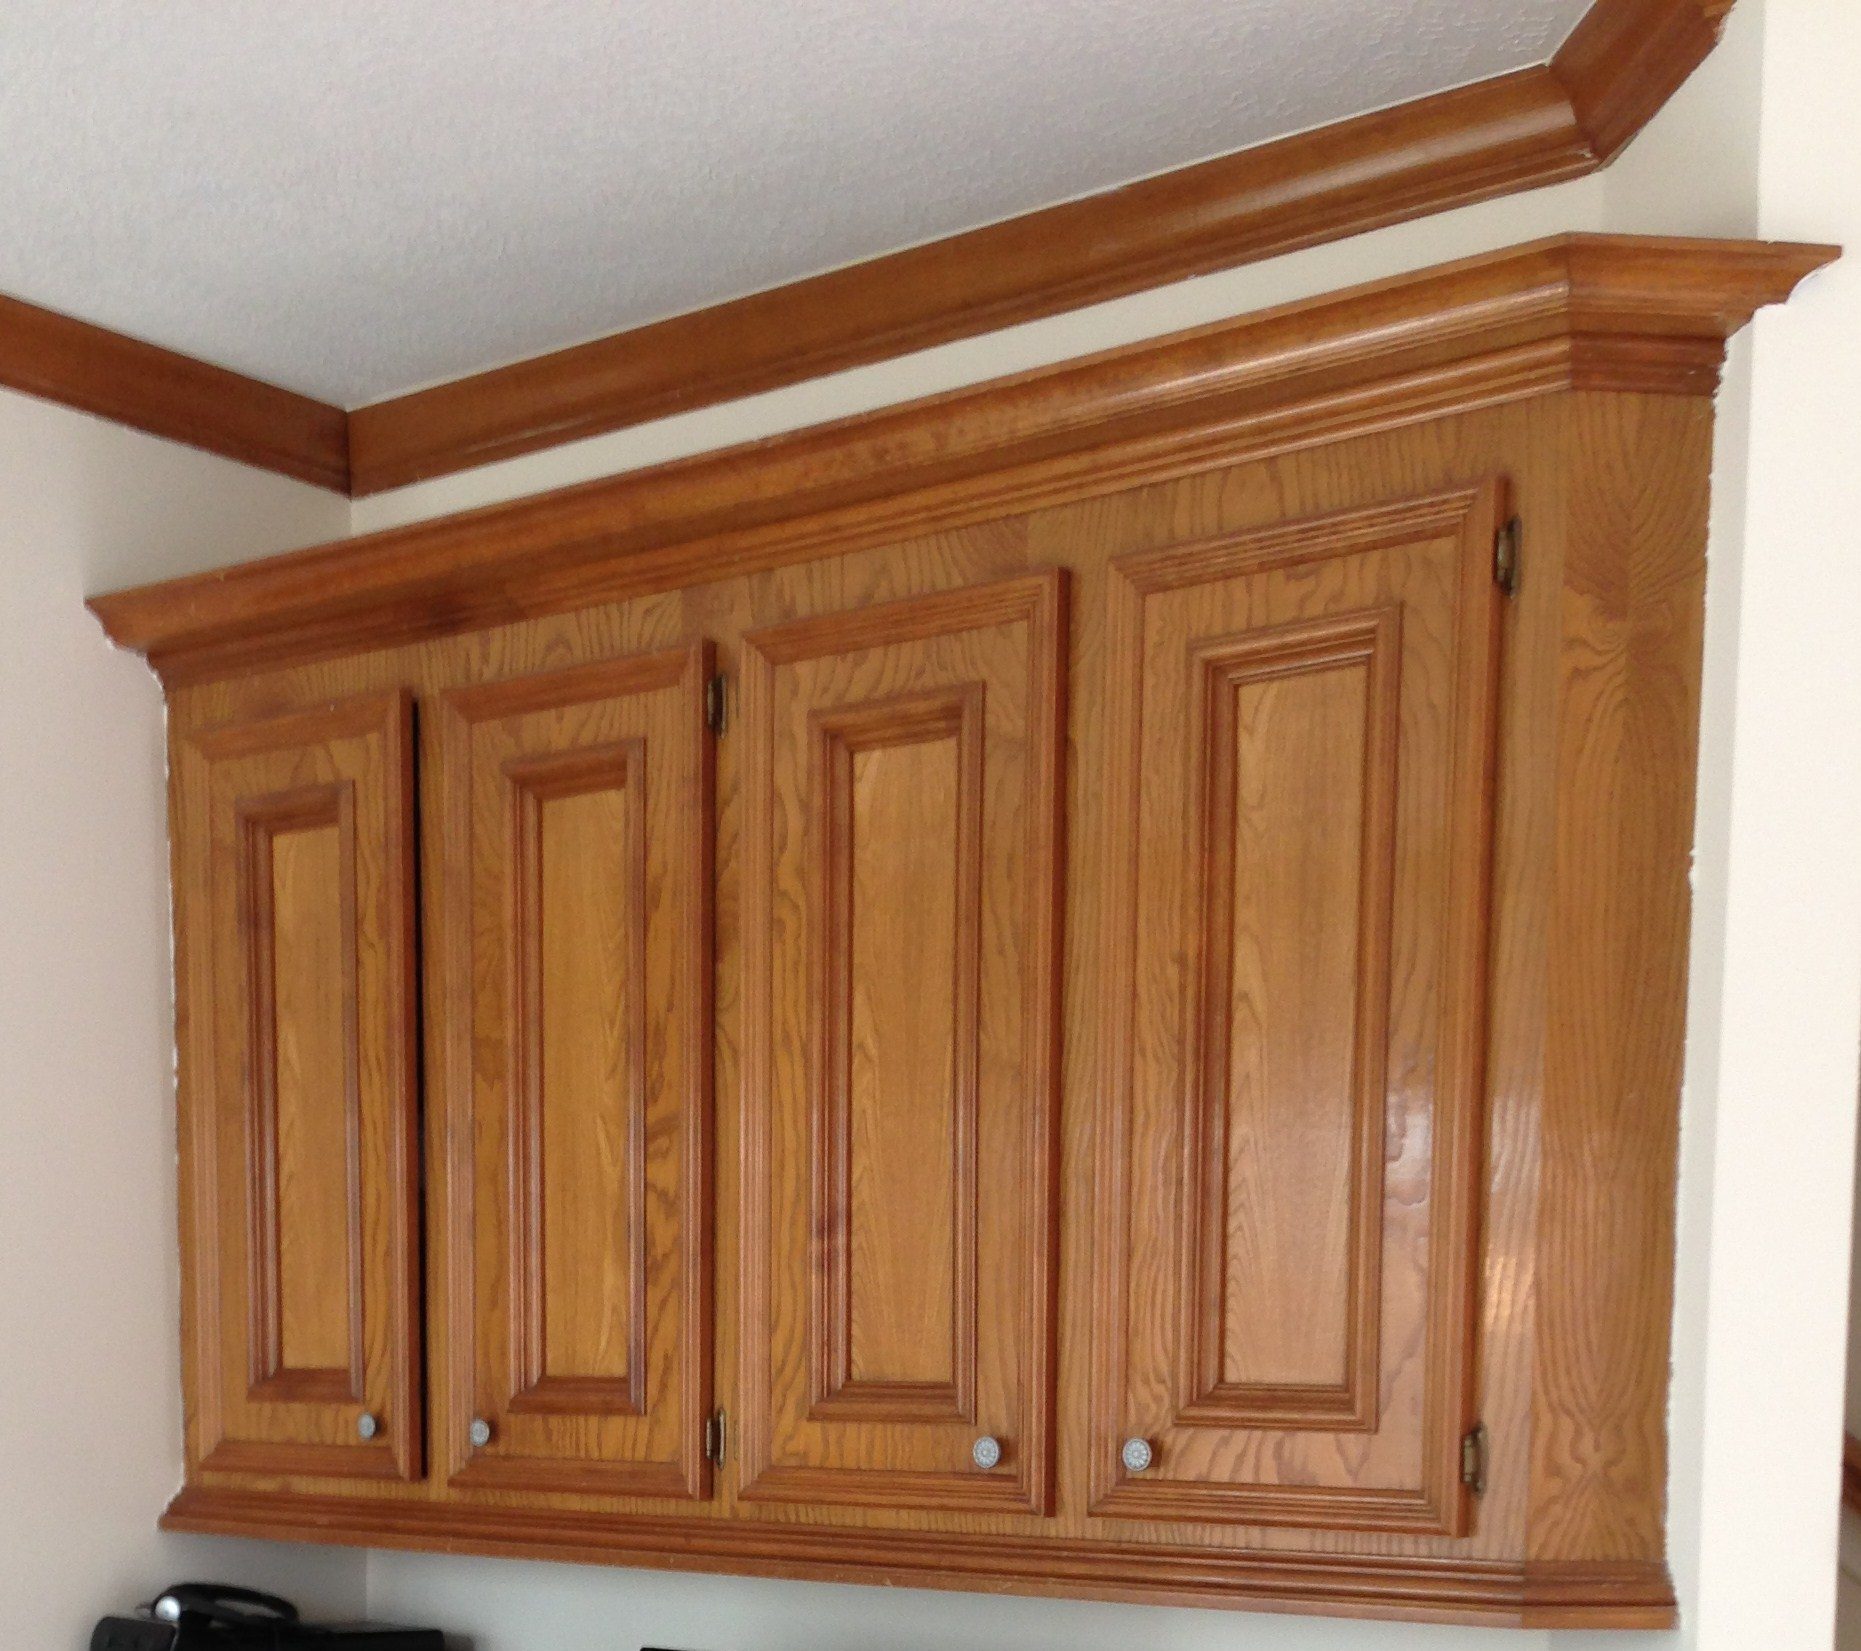 Dated cabinetry with old style hinges.